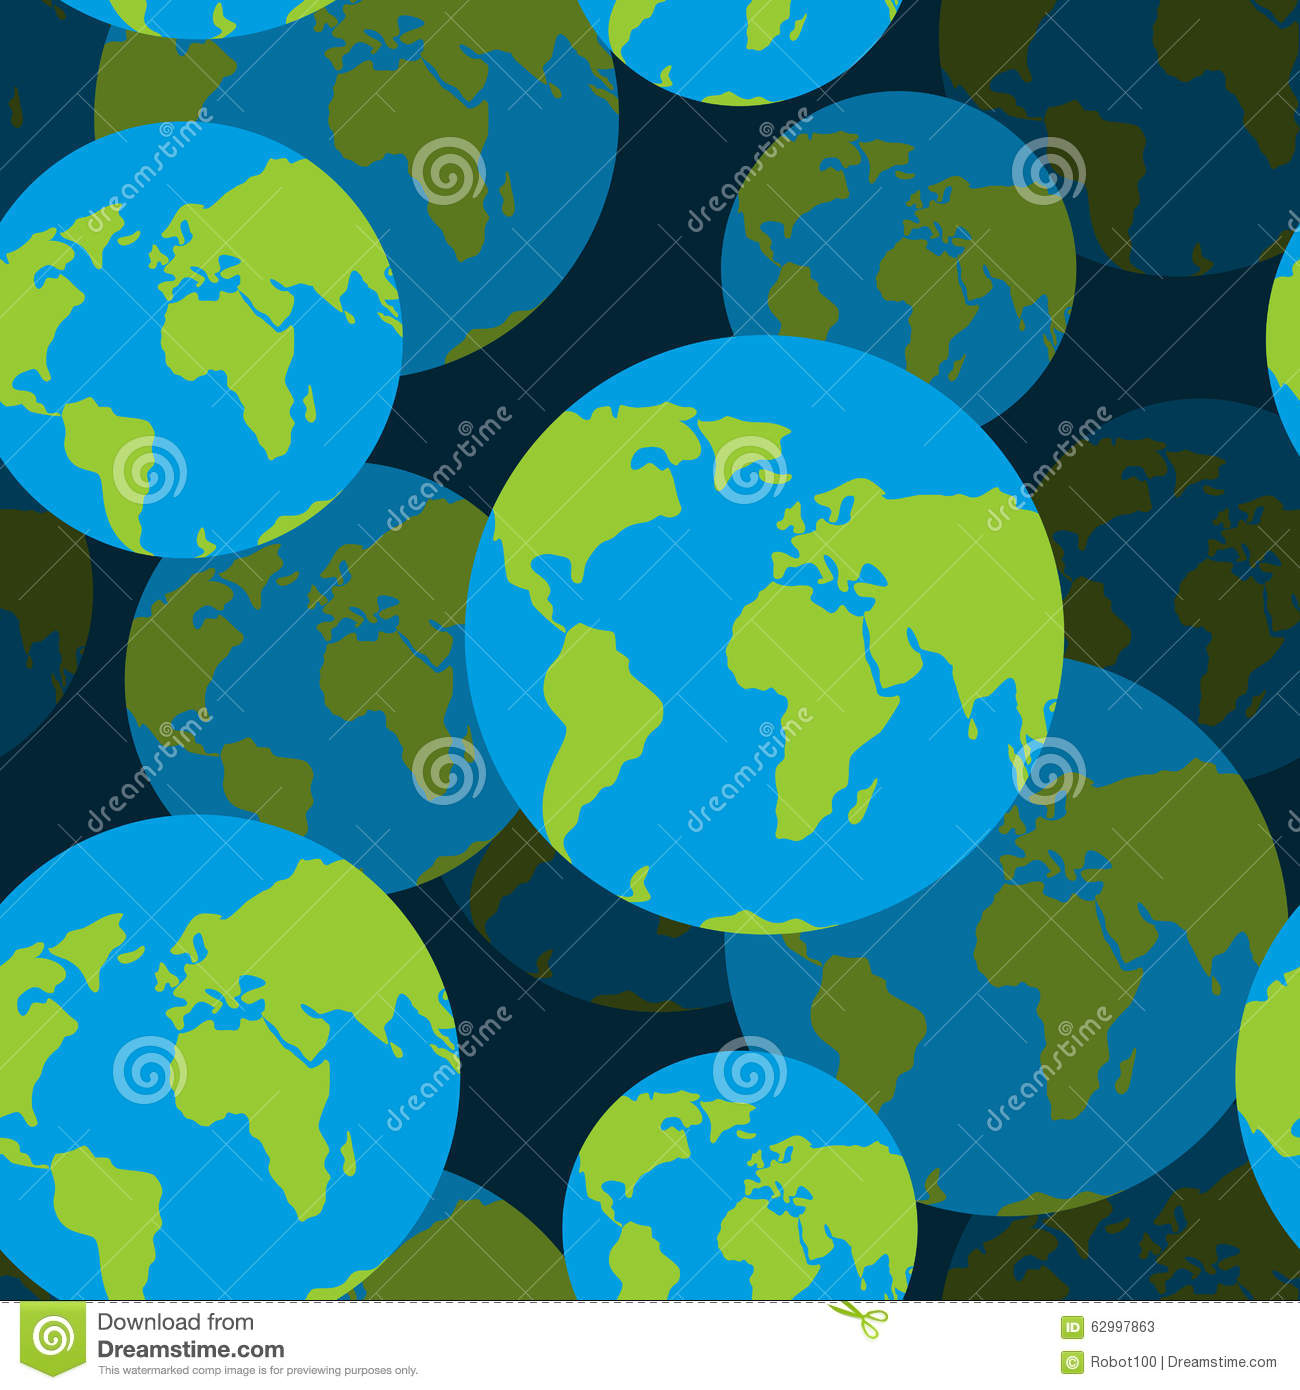 D background images - 3d Background Of Sign Of Globe Texture Stock Vector